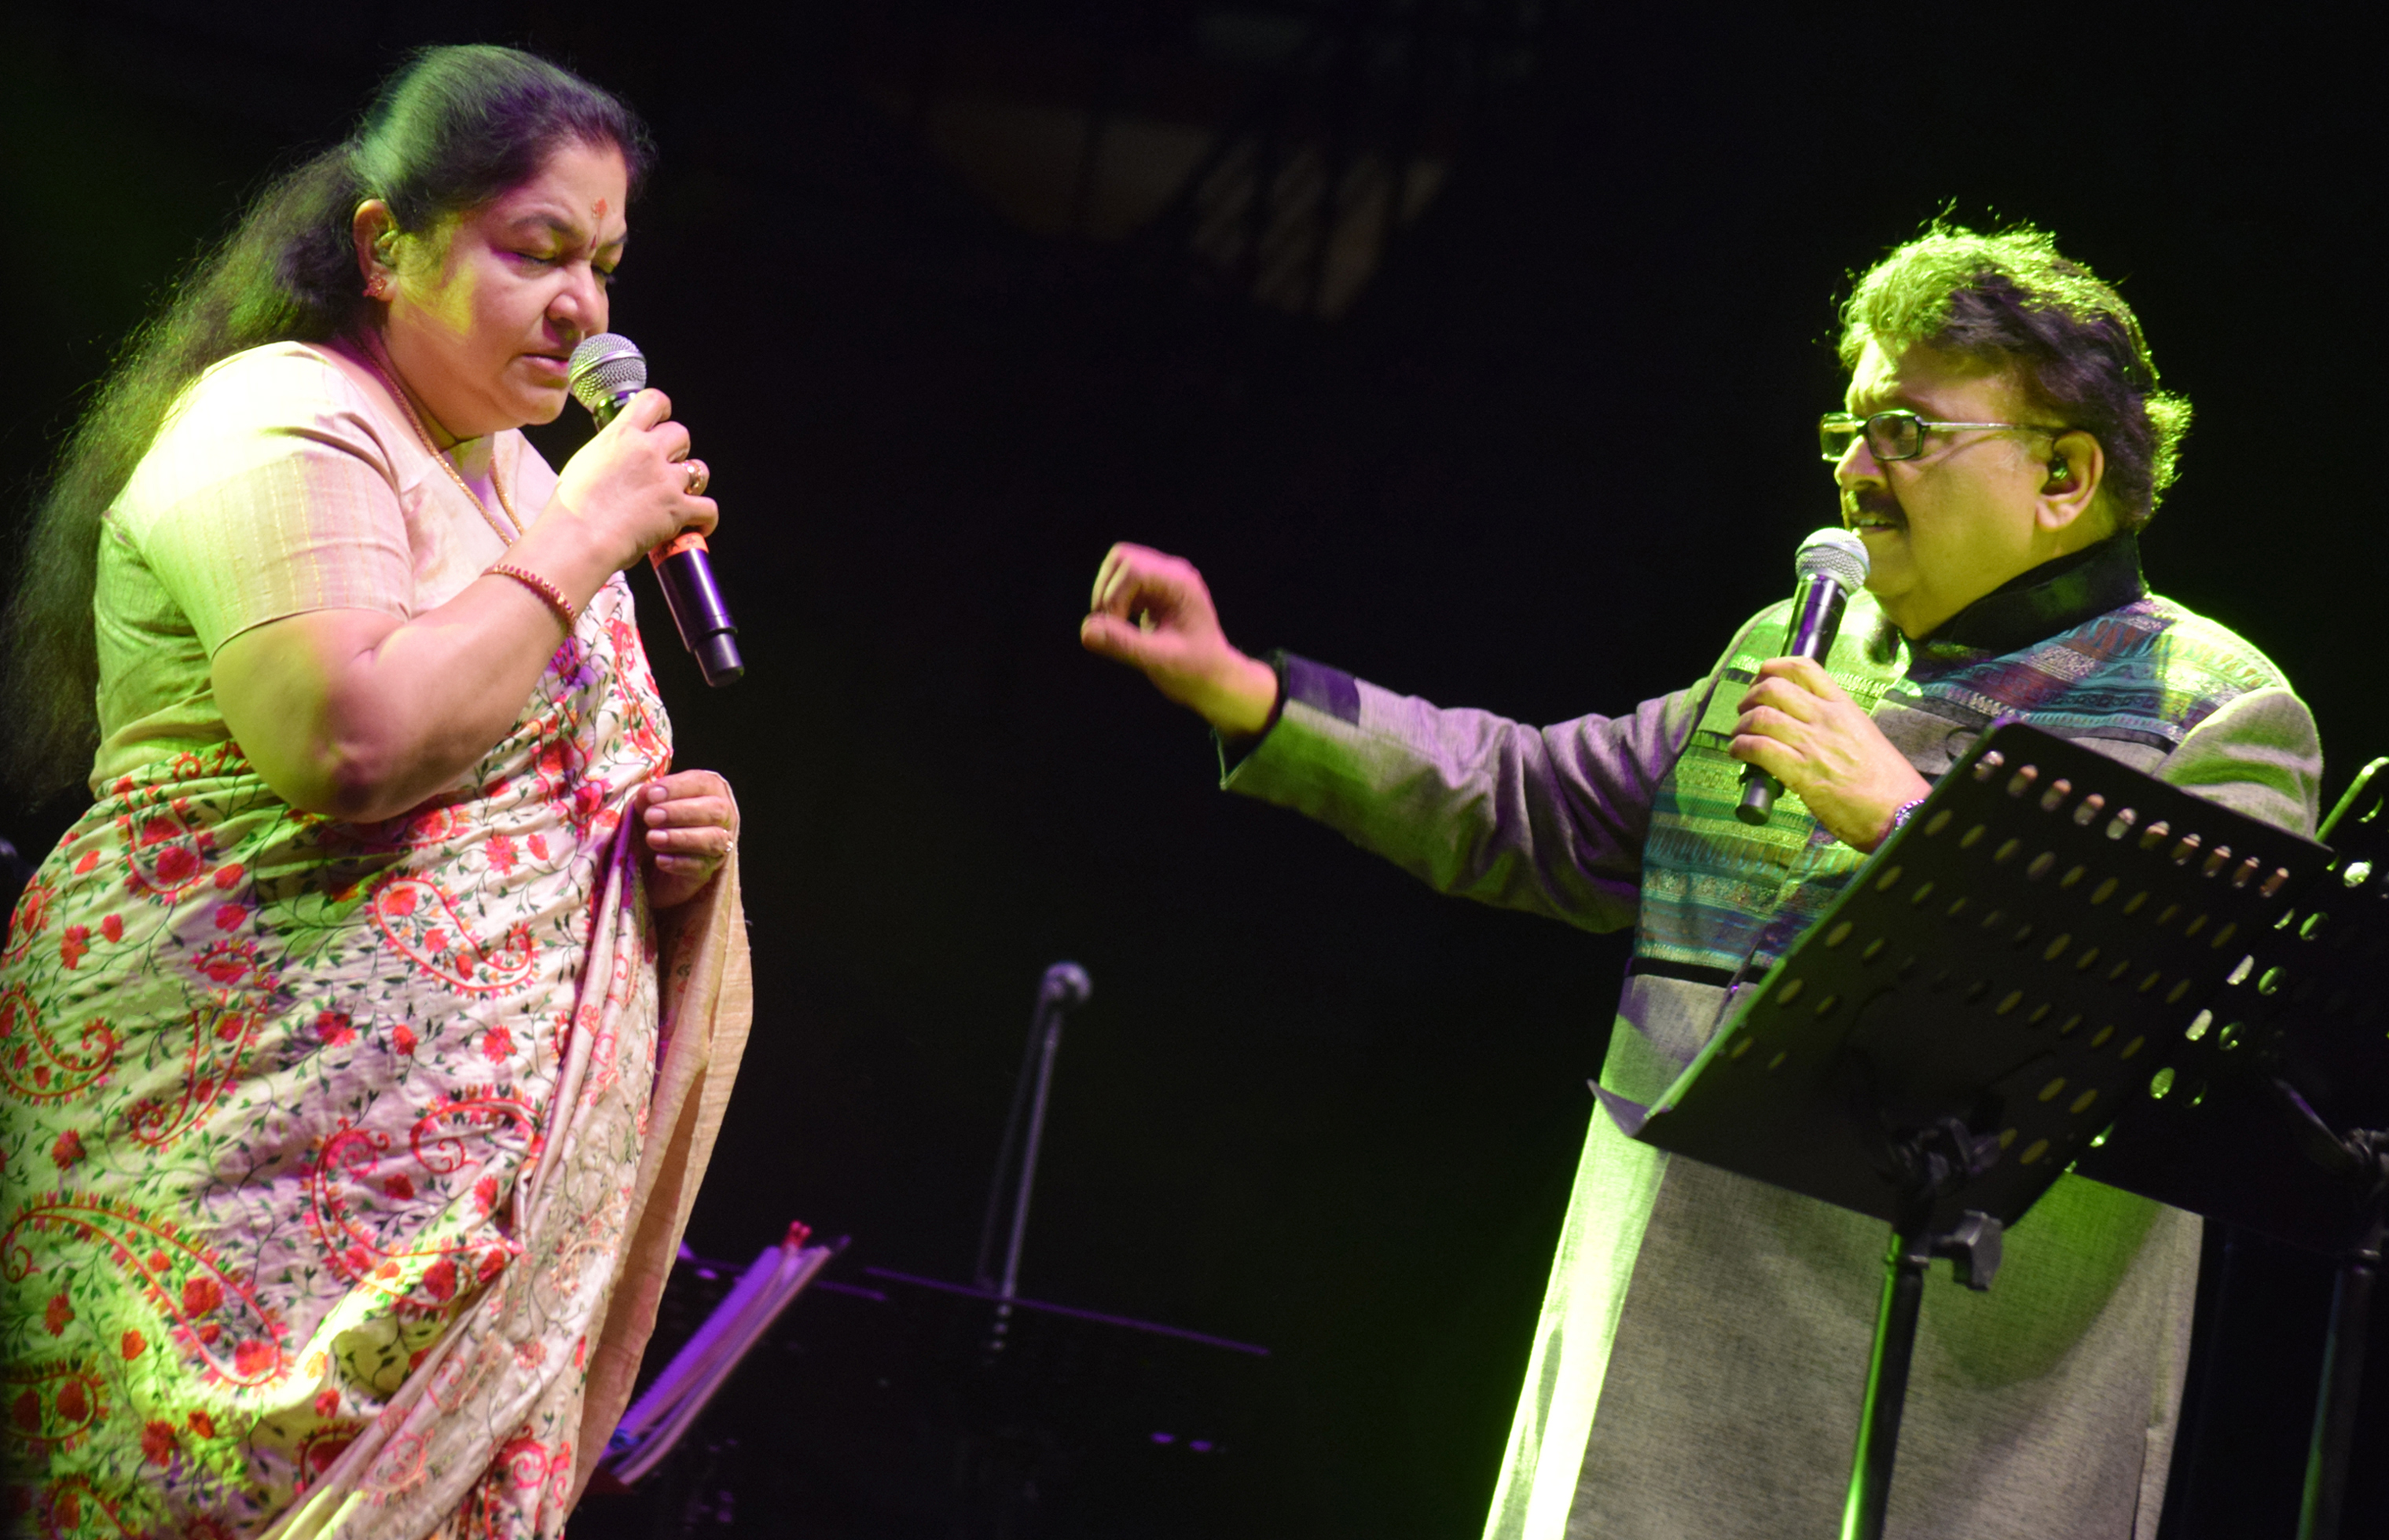 K S Chithra Wikiwand Songspk songs.pk 2020 2019 hindi mp3 songspk free download new latest a to z mp3 songs. k s chithra wikiwand